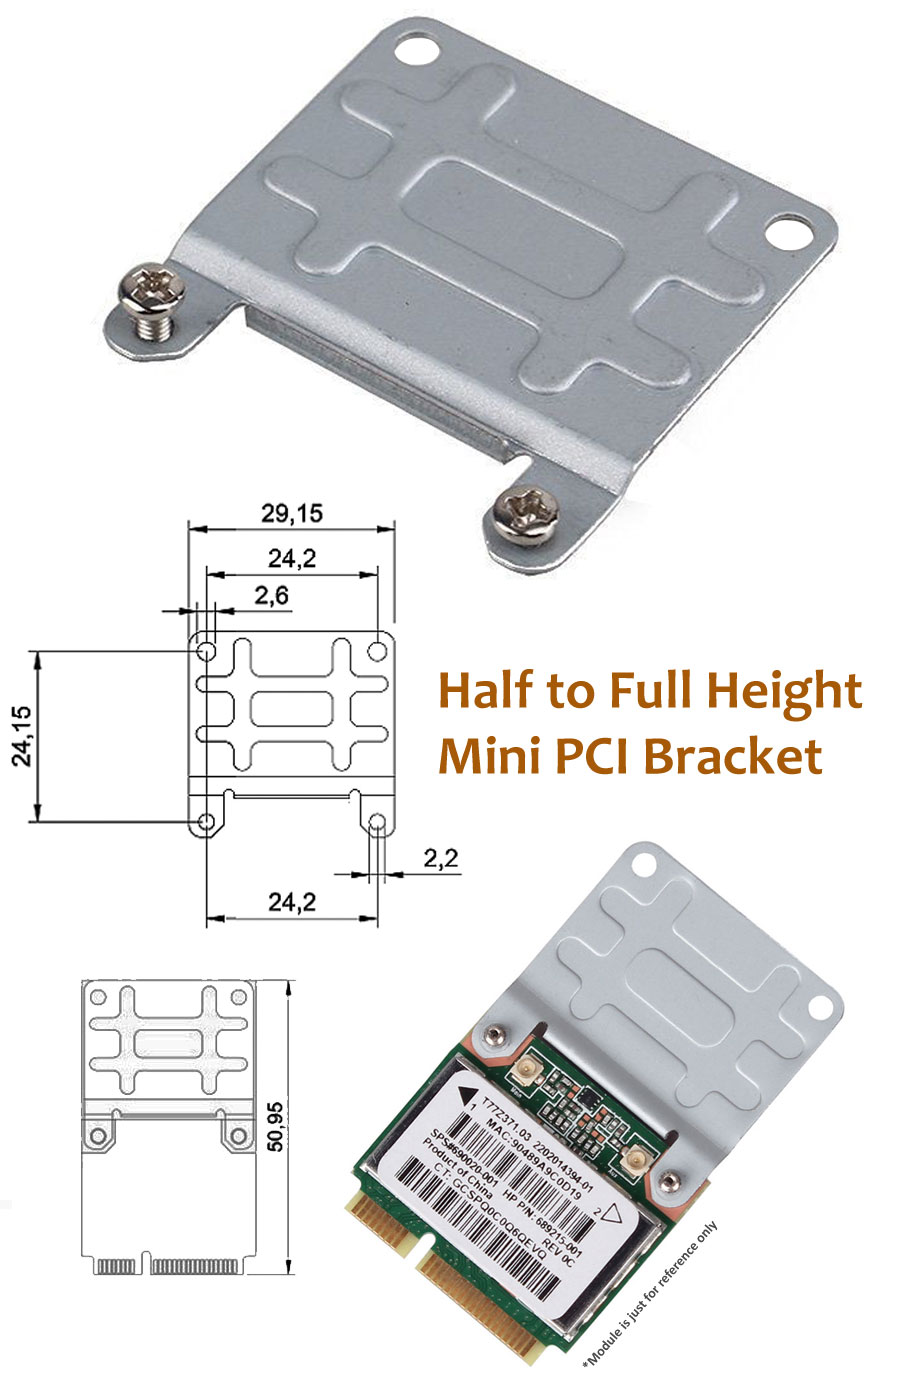 Half to Full Height Mini PCIe Extension Card Bracket Adapter - TPEL-001 | Image